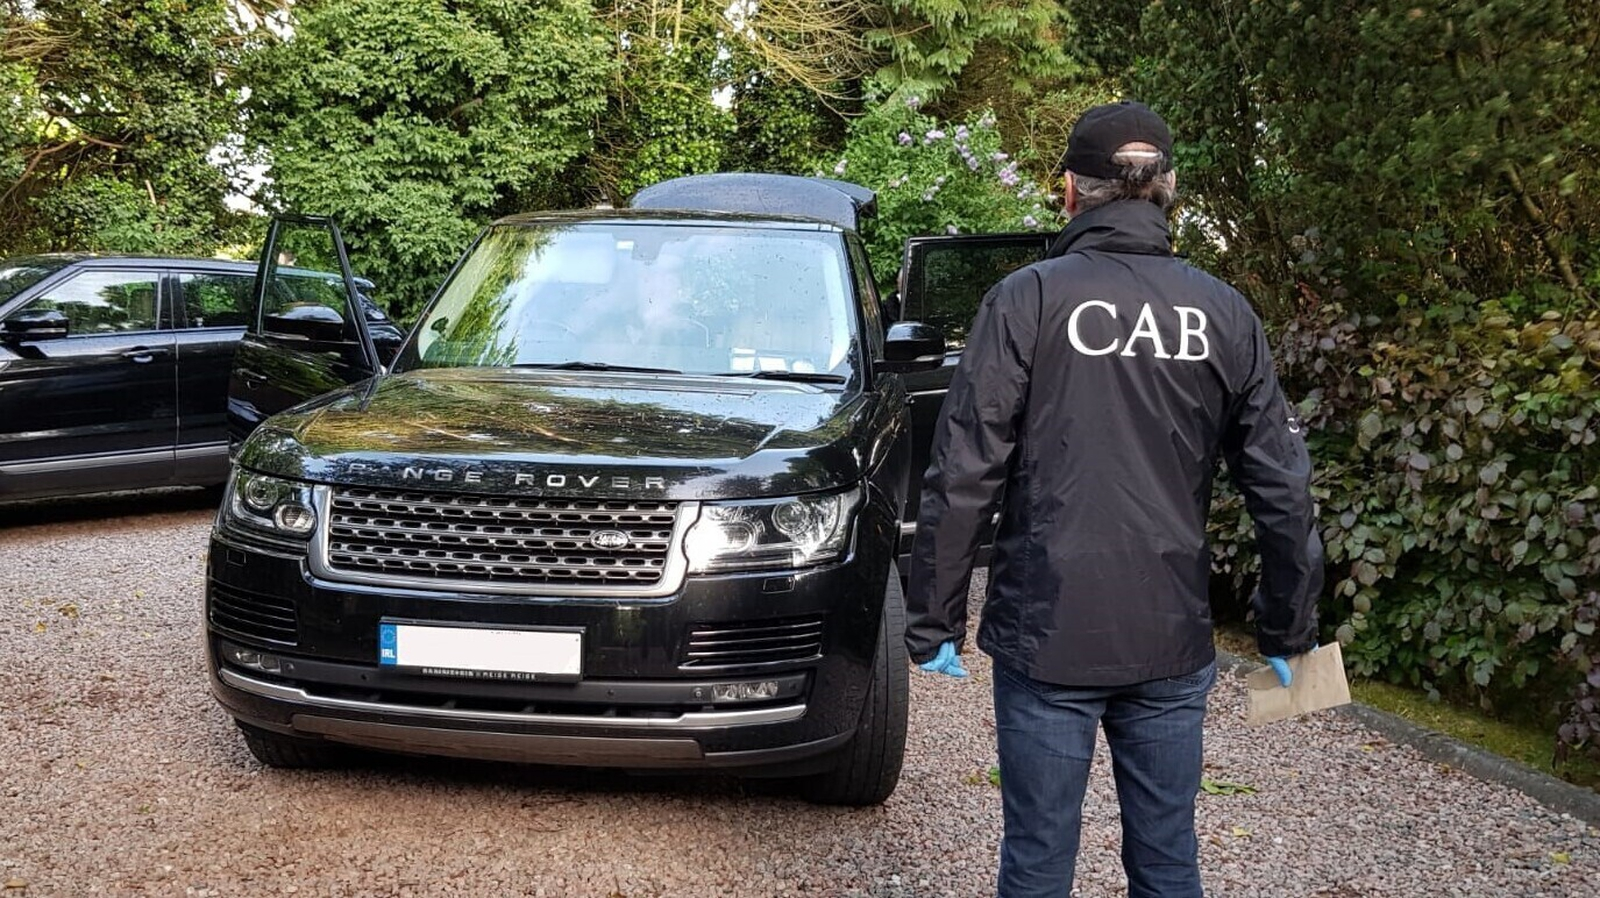 Range Rover and watches seized in CAB searches